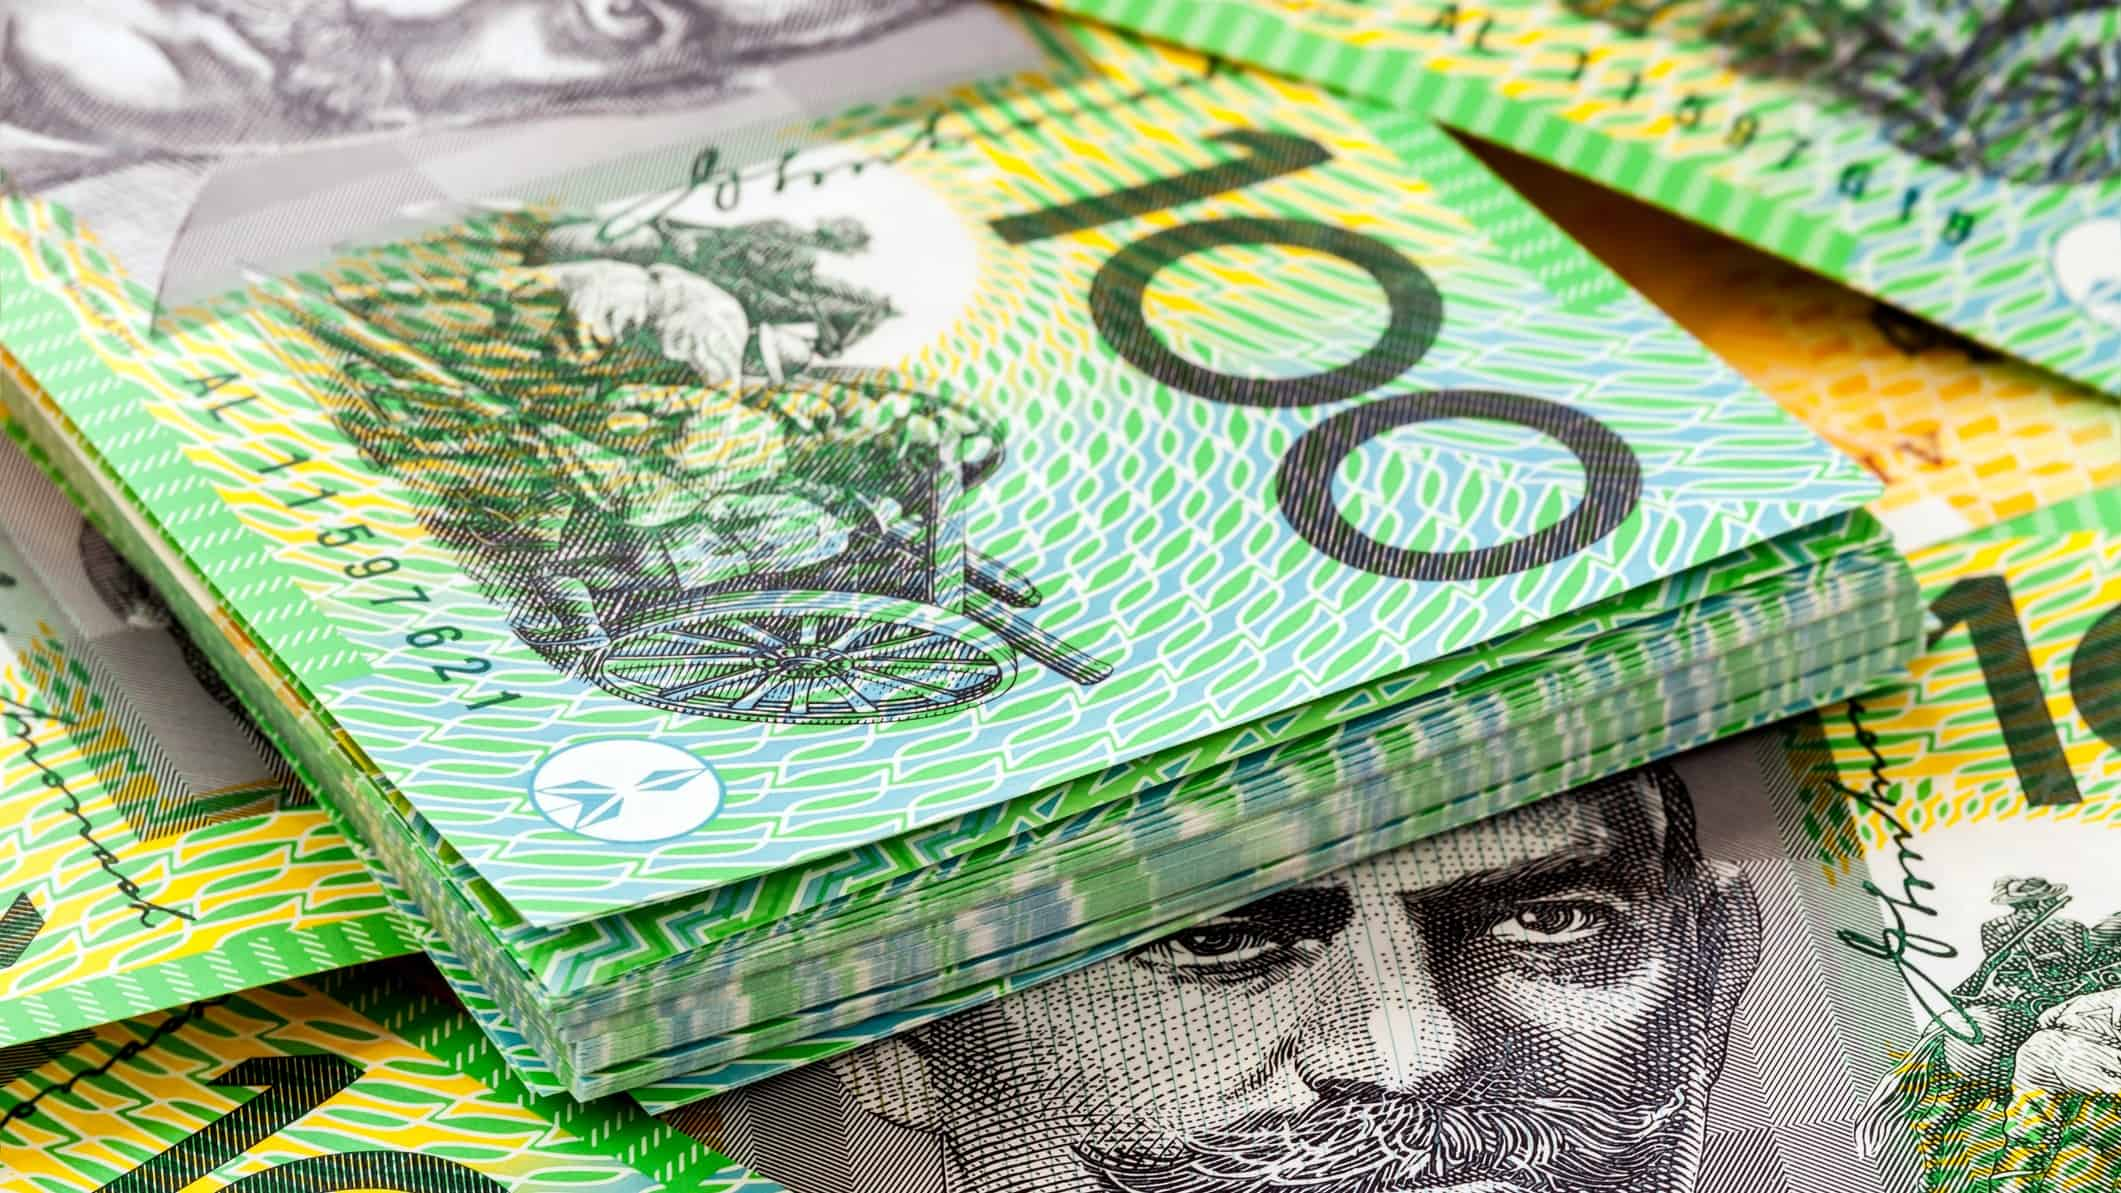 3 ASX blue chip shares I'd buy with $3,000 right now - RapidAPI